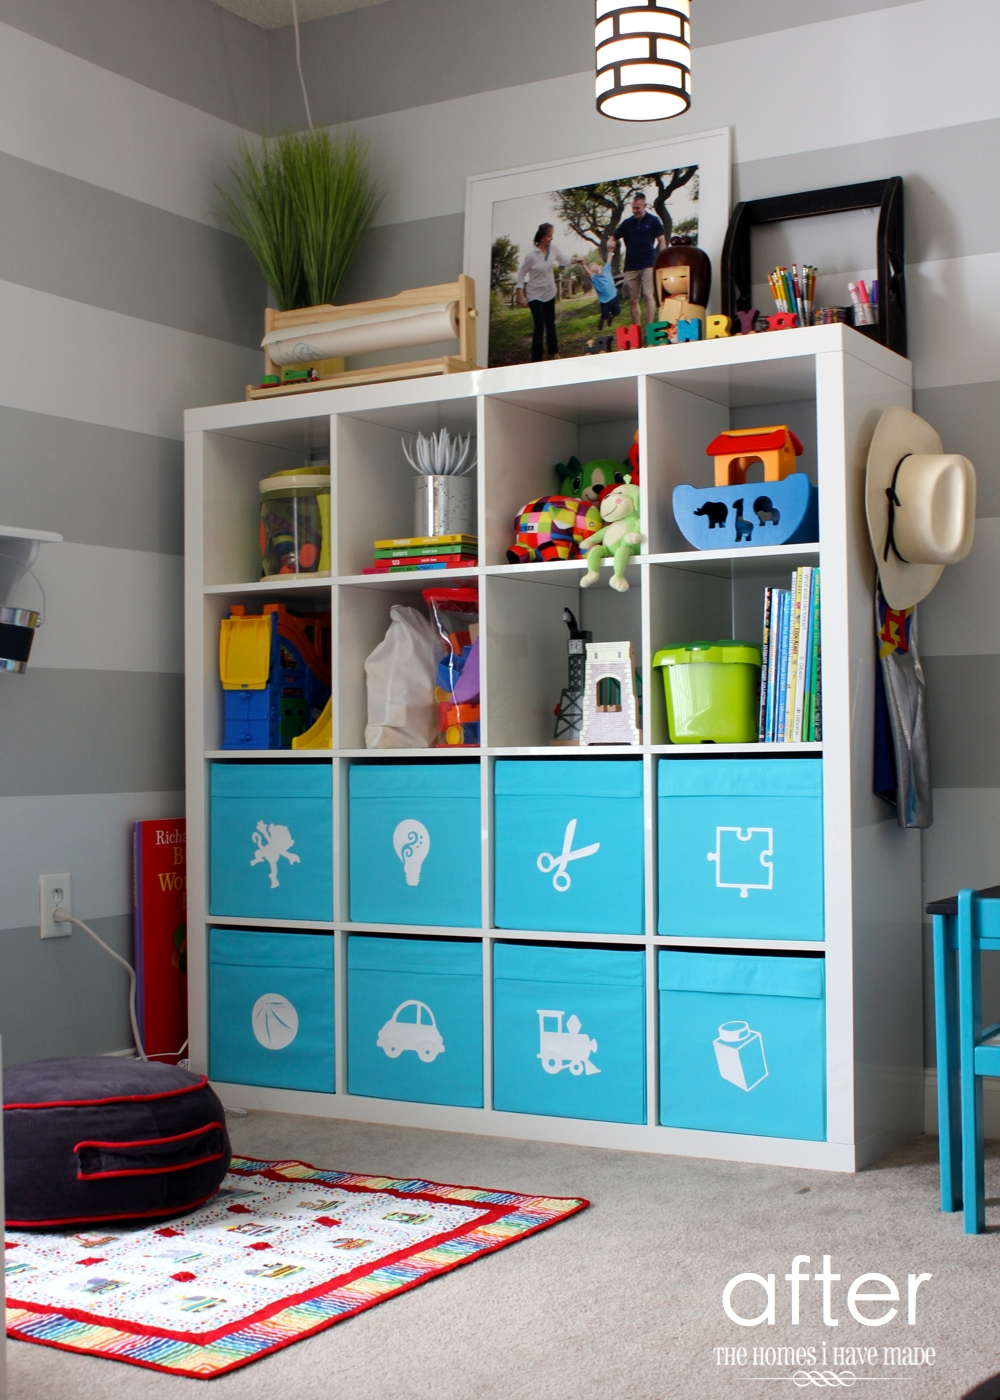 pretty ikea toy storage in white and blue nuance filled with kids goods and frame above with horizontal grey and white horizontal stripped wall